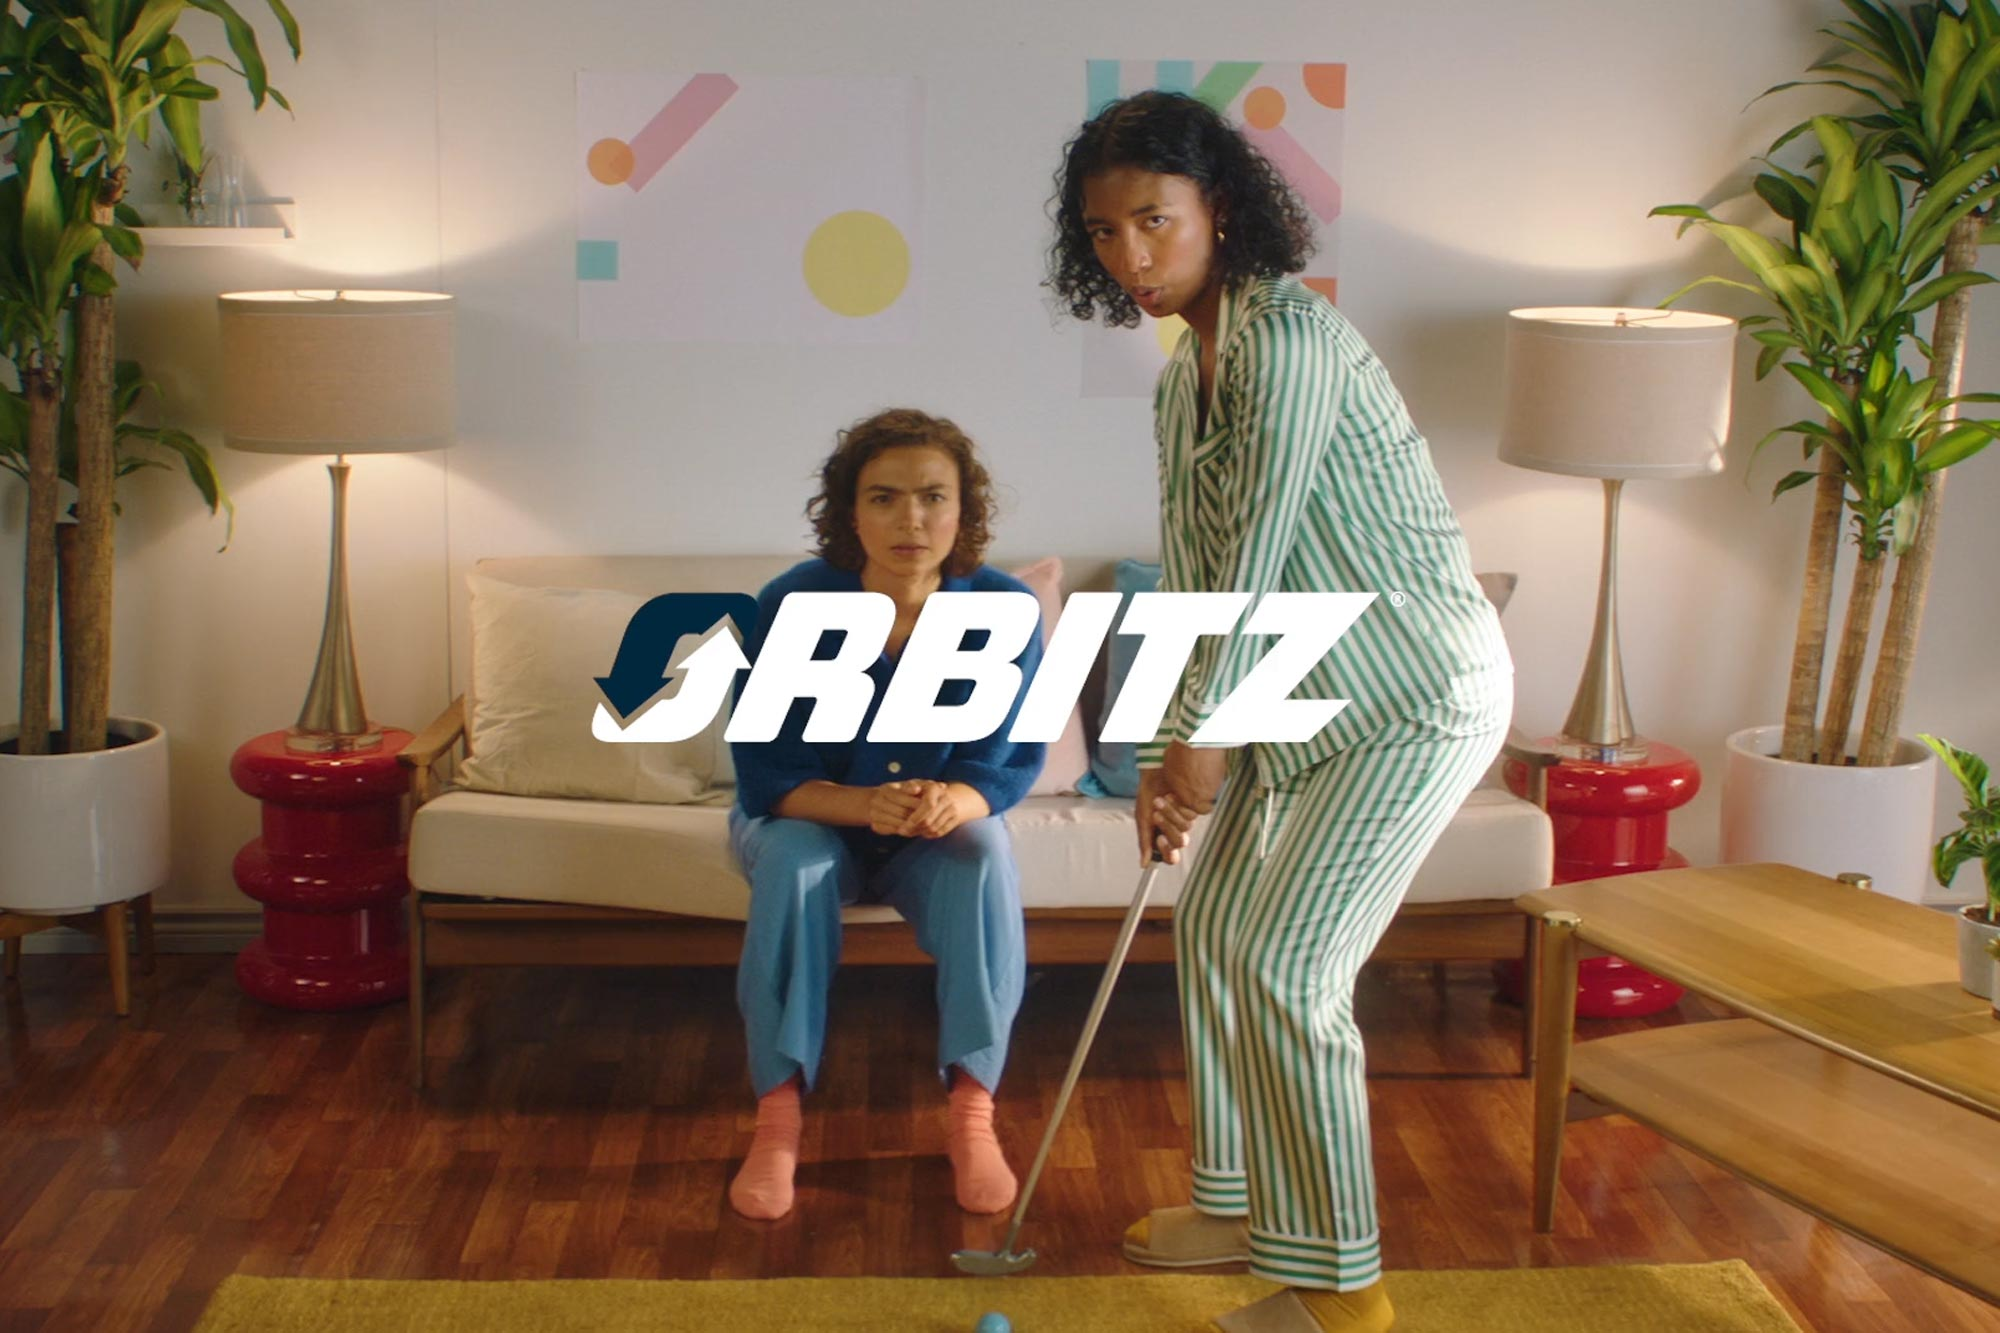 Orbitz — Have To / Want To